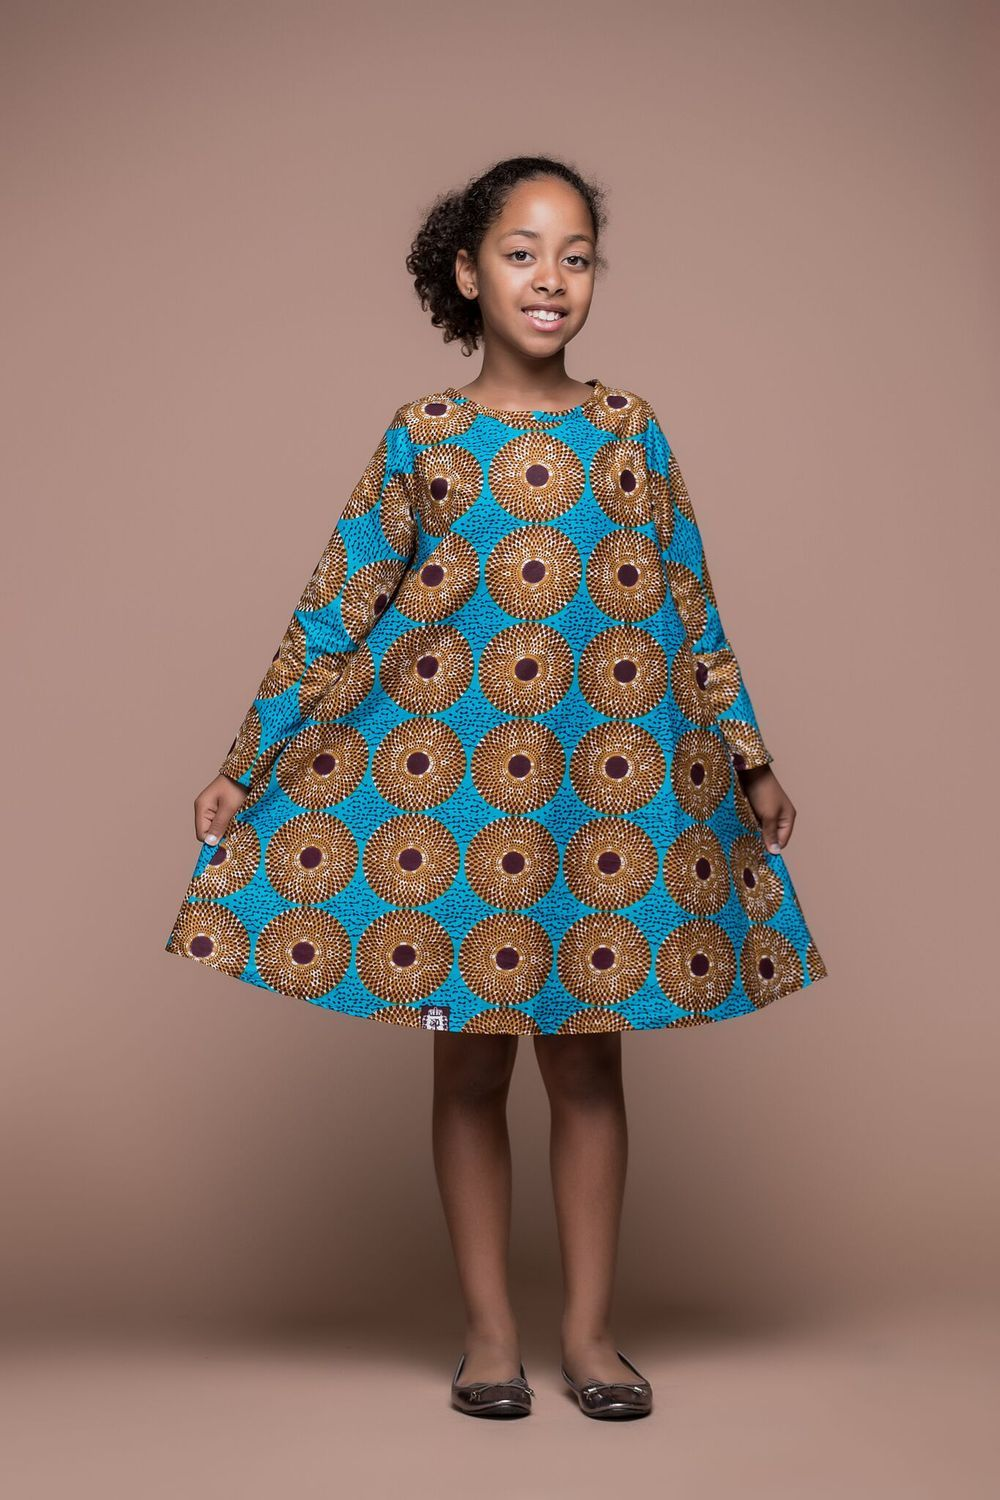 African Print Dinefa Kid S Dress African Clothing For